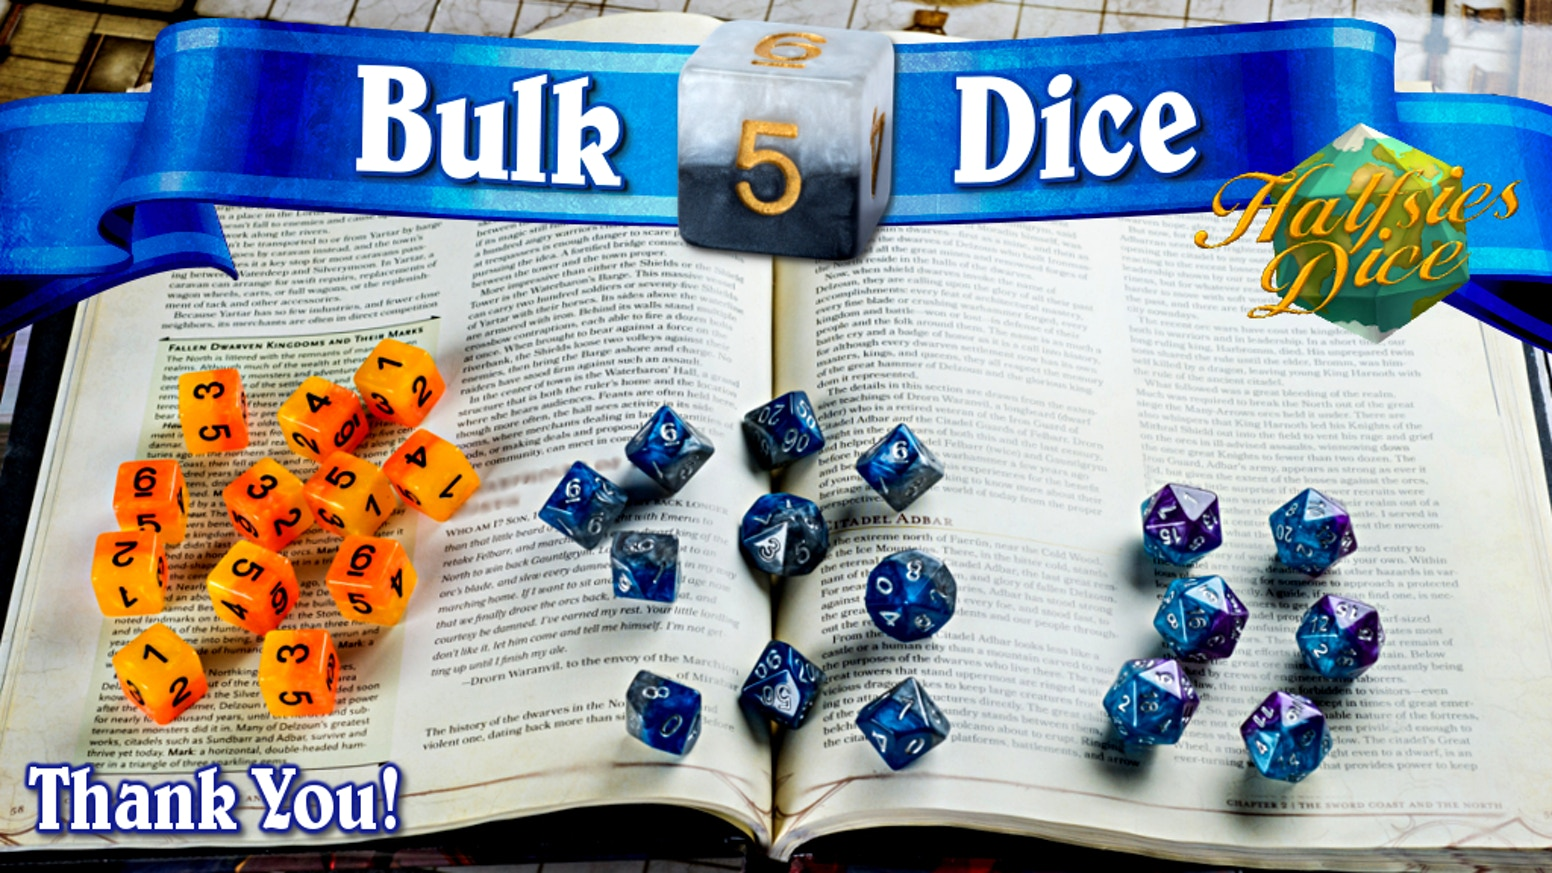 Kickstarter's first ever 'Bulk Dice' campaign.  Find us at www.gatekeepergaming.com after the campaign to get yours.